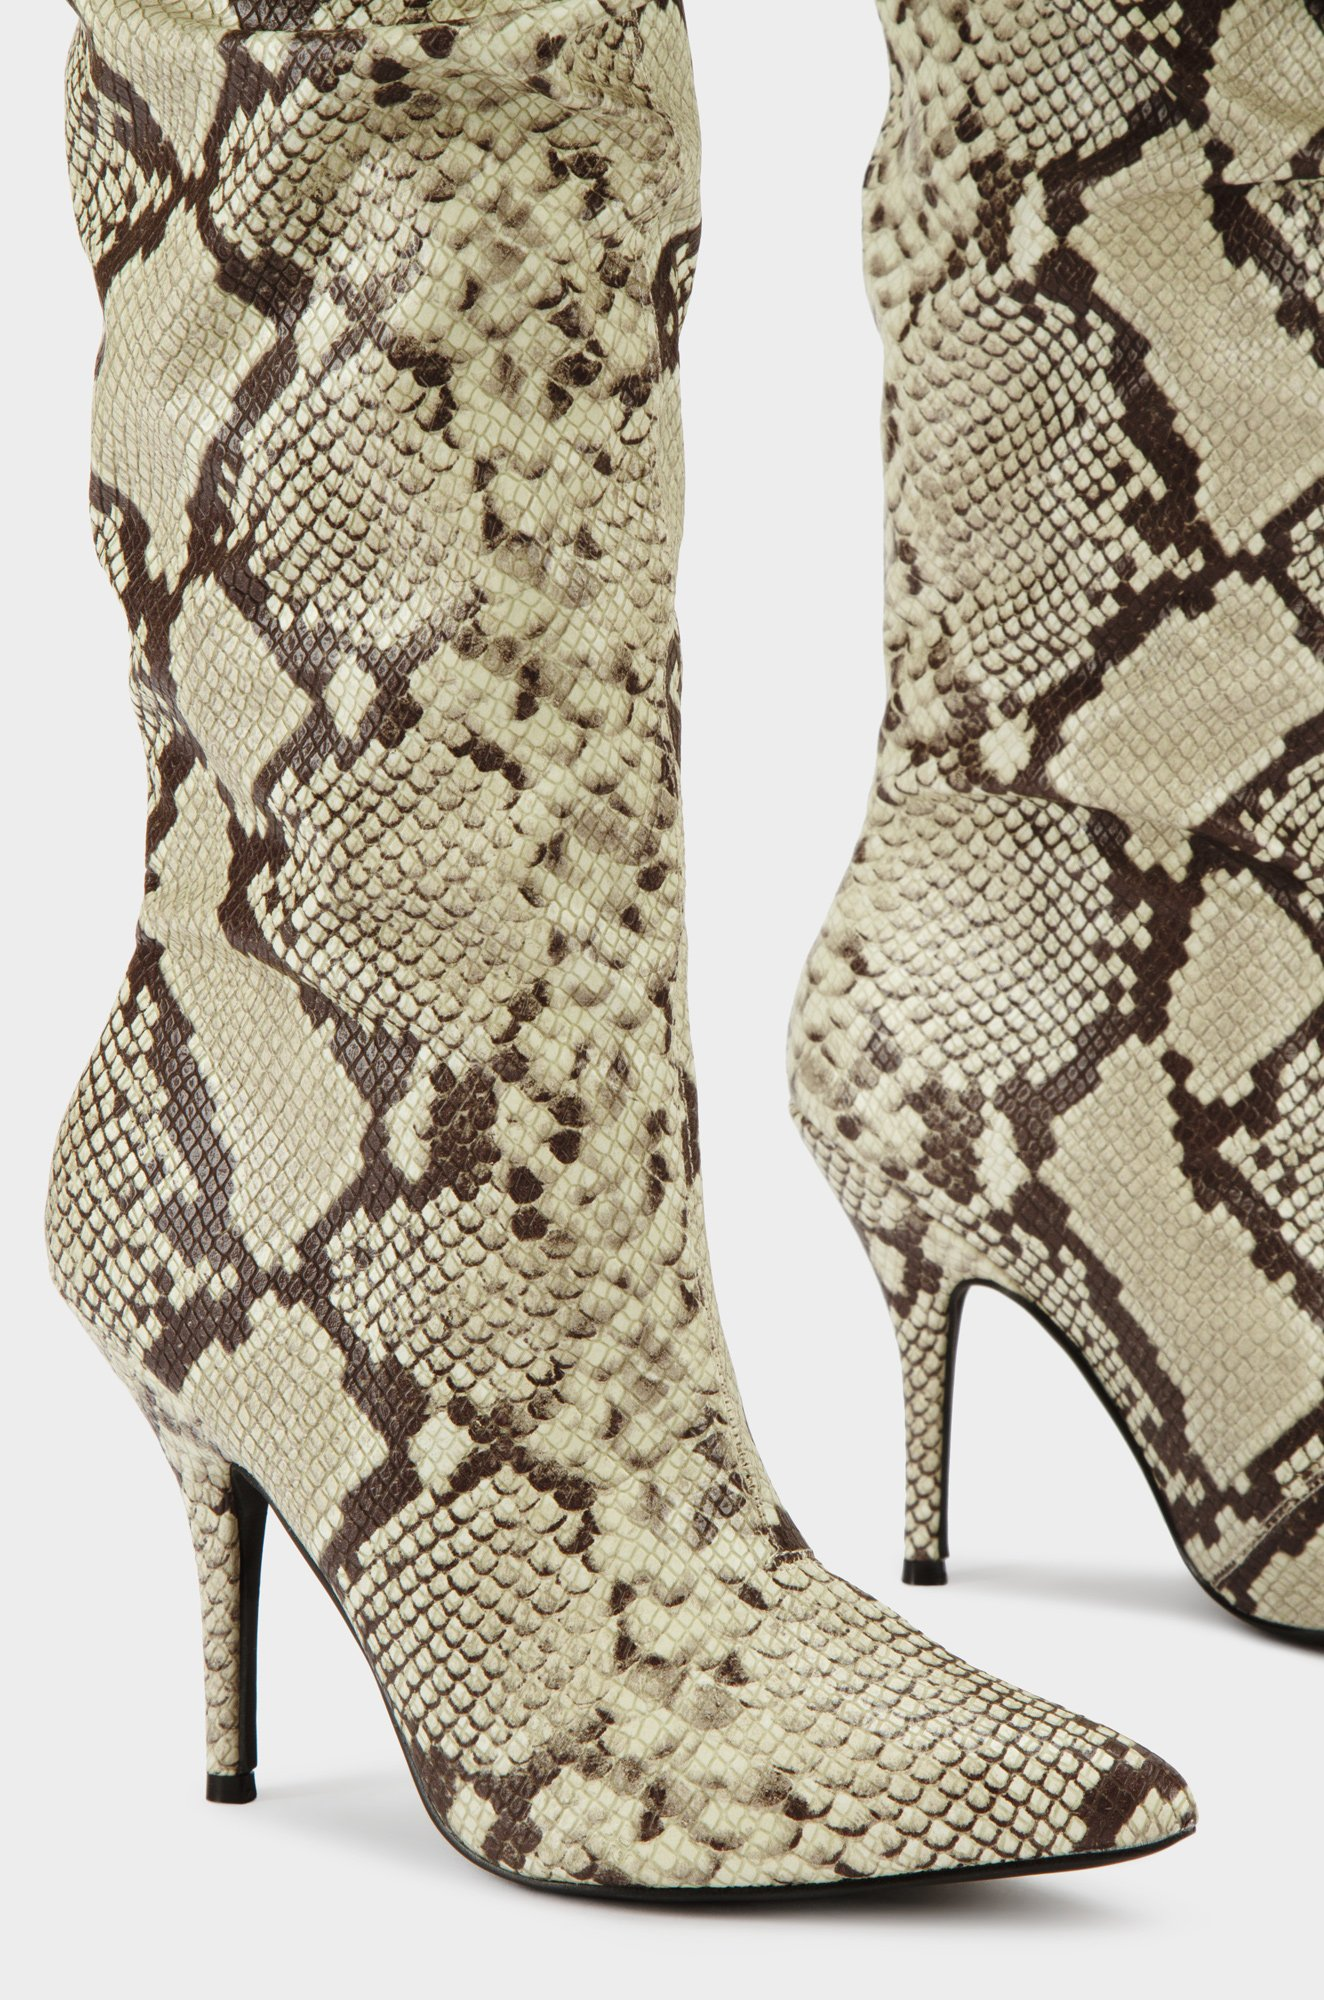 Cape-Robbin-Bown-Snake-Thigh-High-Slouch-Pointed-Toe-Over-The-Knee-Stiletto-Boot thumbnail 32